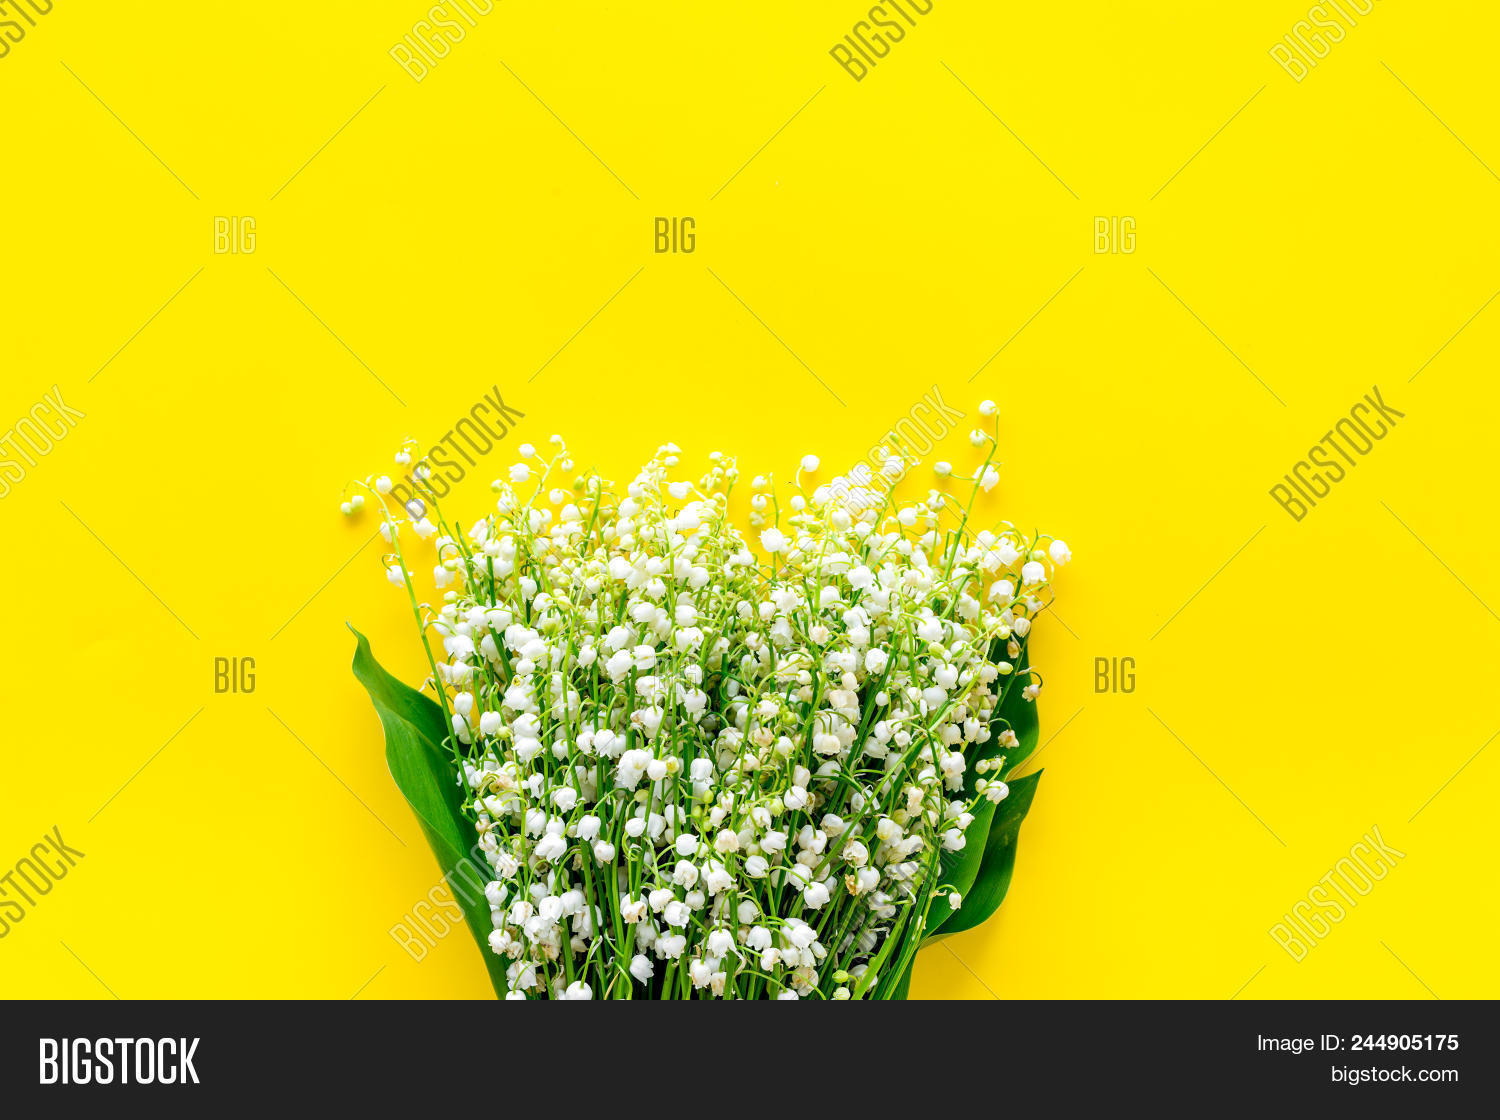 Small Fragrant Spring Image Photo Free Trial Bigstock